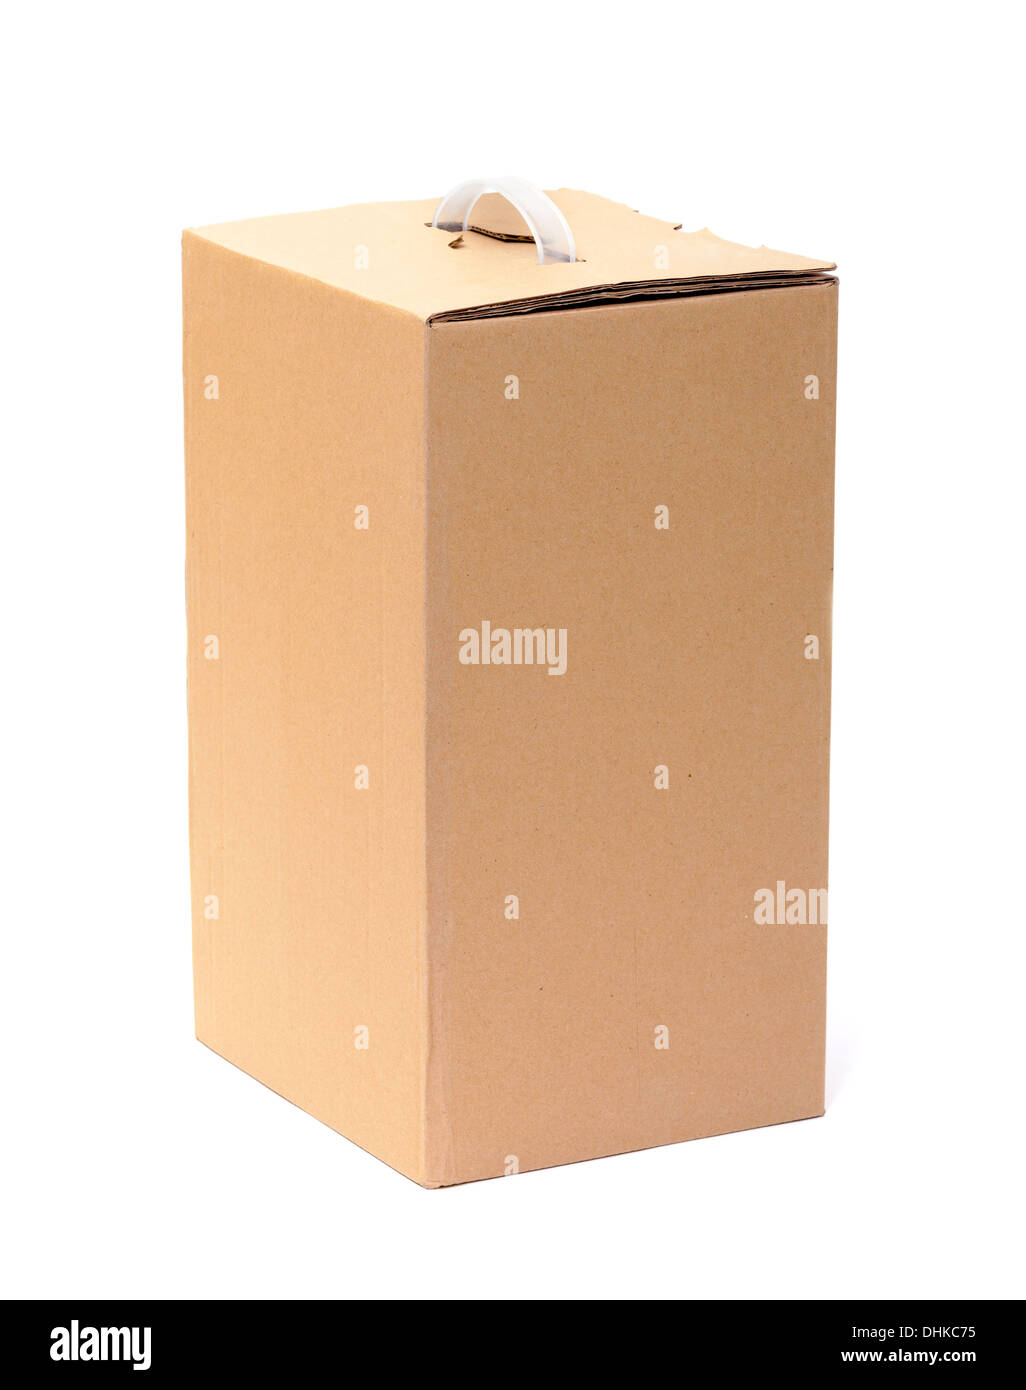 Corrugated Cardboard Box with Handle - Stock Image